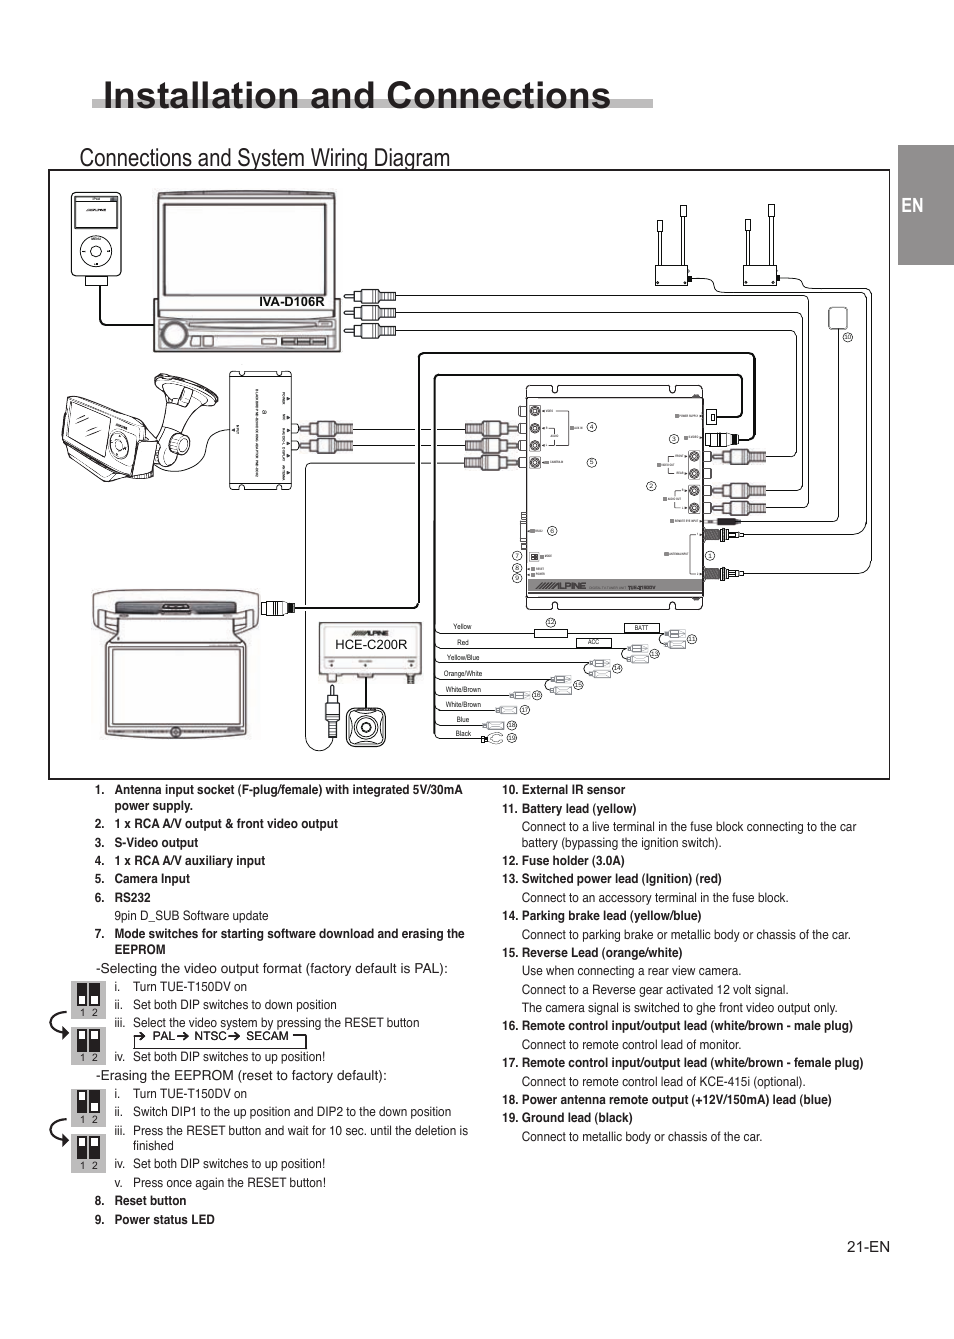 Installation And Connections  Connections And System Wiring Diagram  Precautions